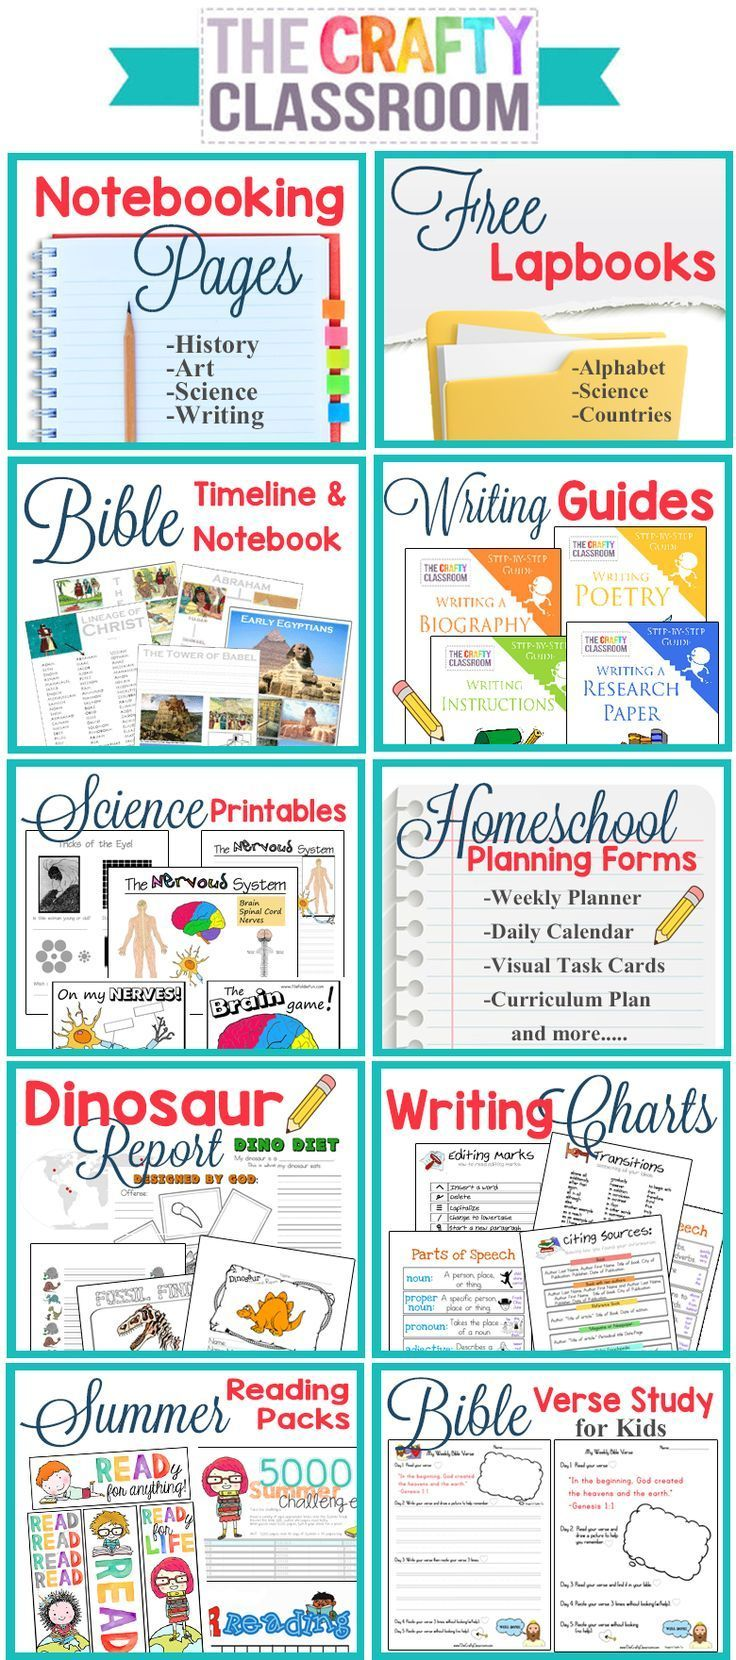 Free Homeschool Printables and Teaching Resources. There is so much here on this website!!  Bible Timeline, Writing Guides for Kids, Homeschool Planning Forms, Free Notebooking Pages, Free Lapbooks, Writing Charts....Huge Resource!!  http://www.TheCraftyC